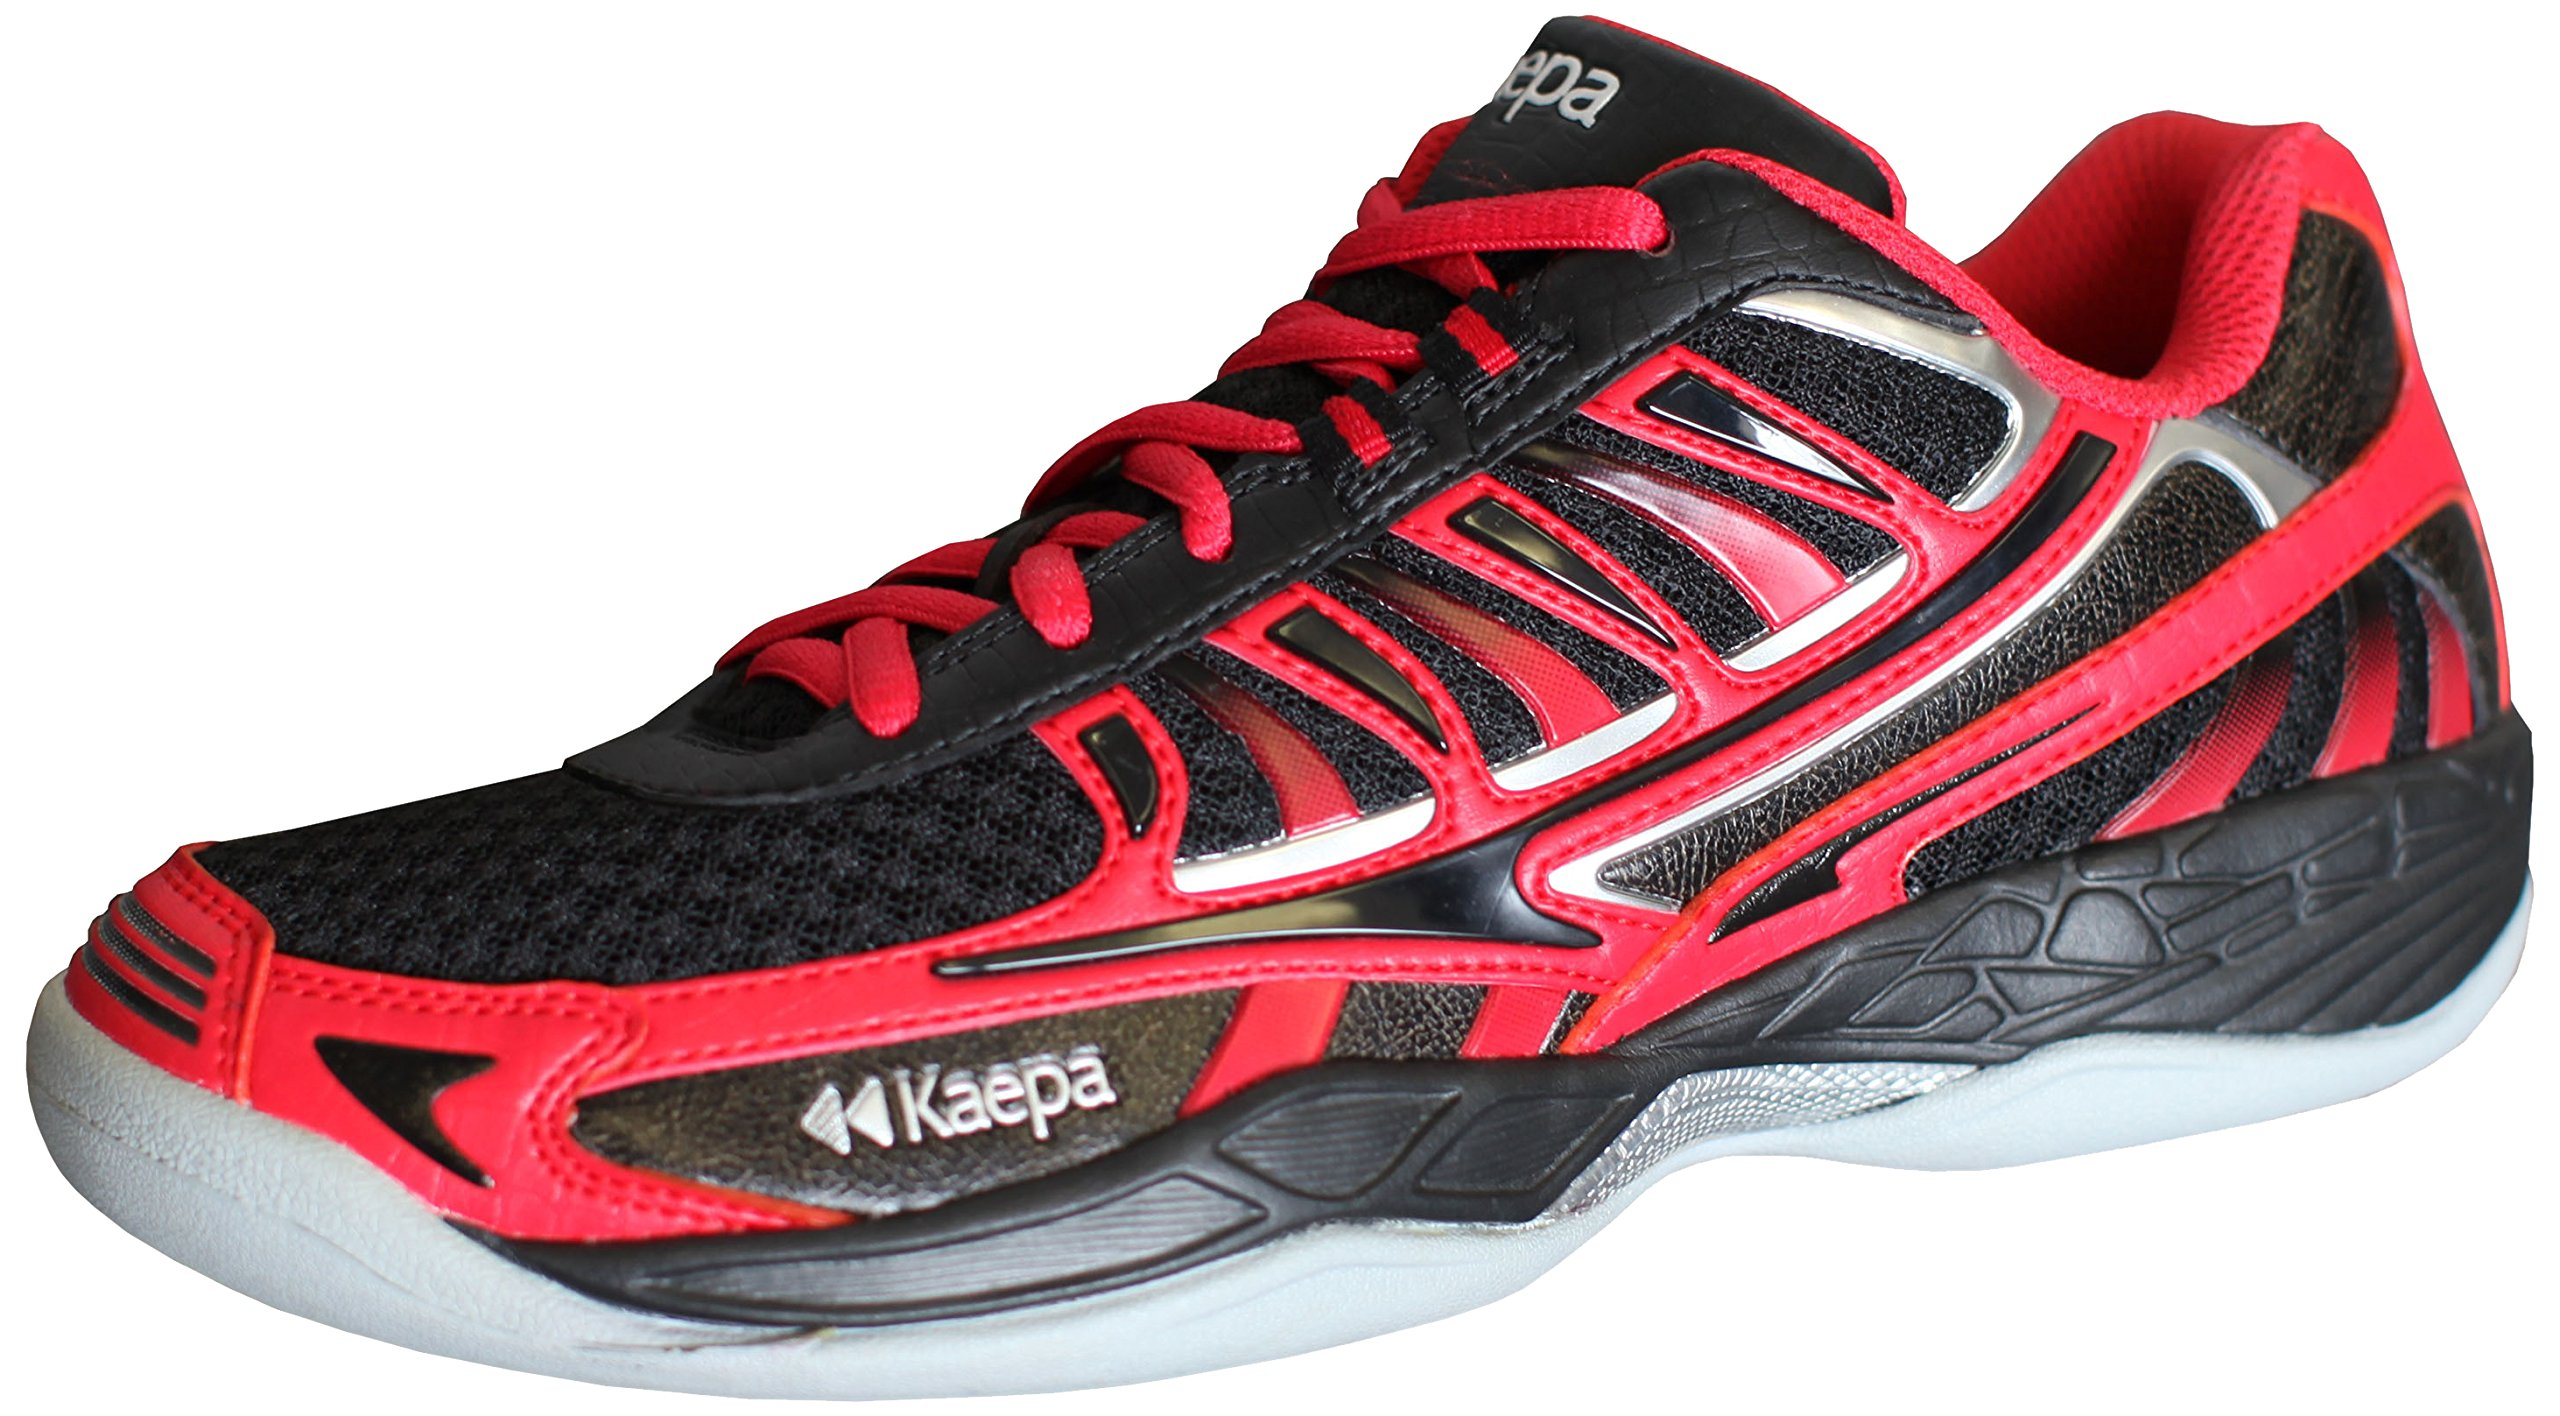 Kaepa Women's Heat Volleyball Shoes, Red, 6.5